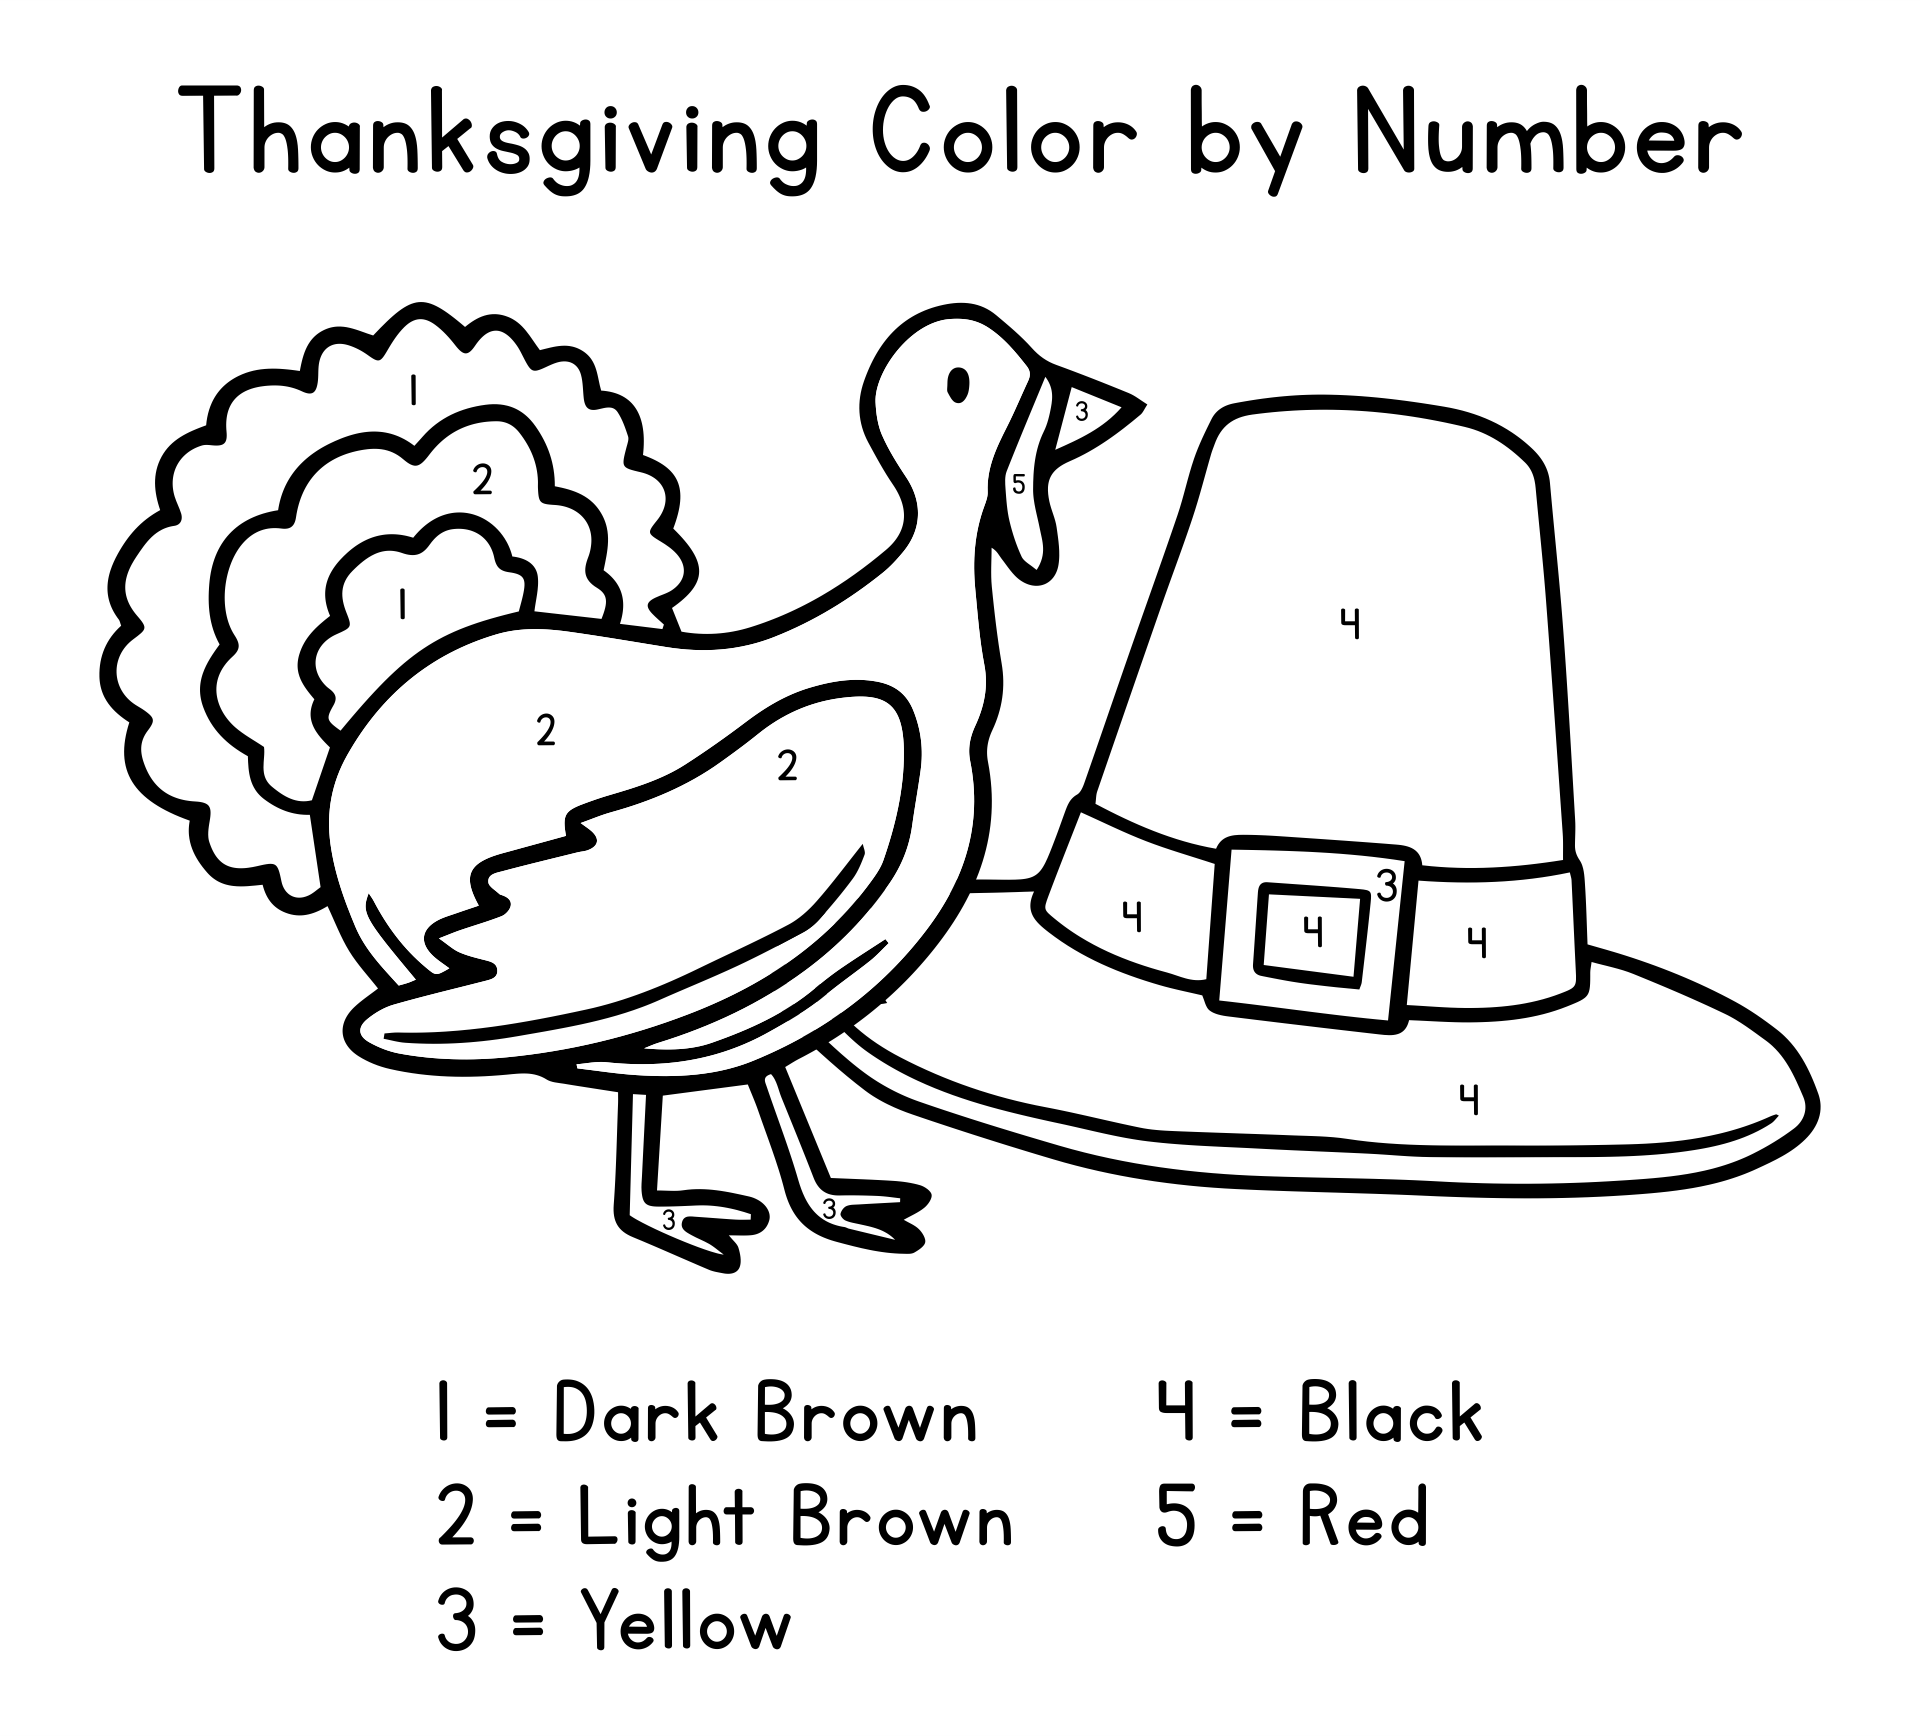 Printable Thanksgiving Color by Number Coloring Pages